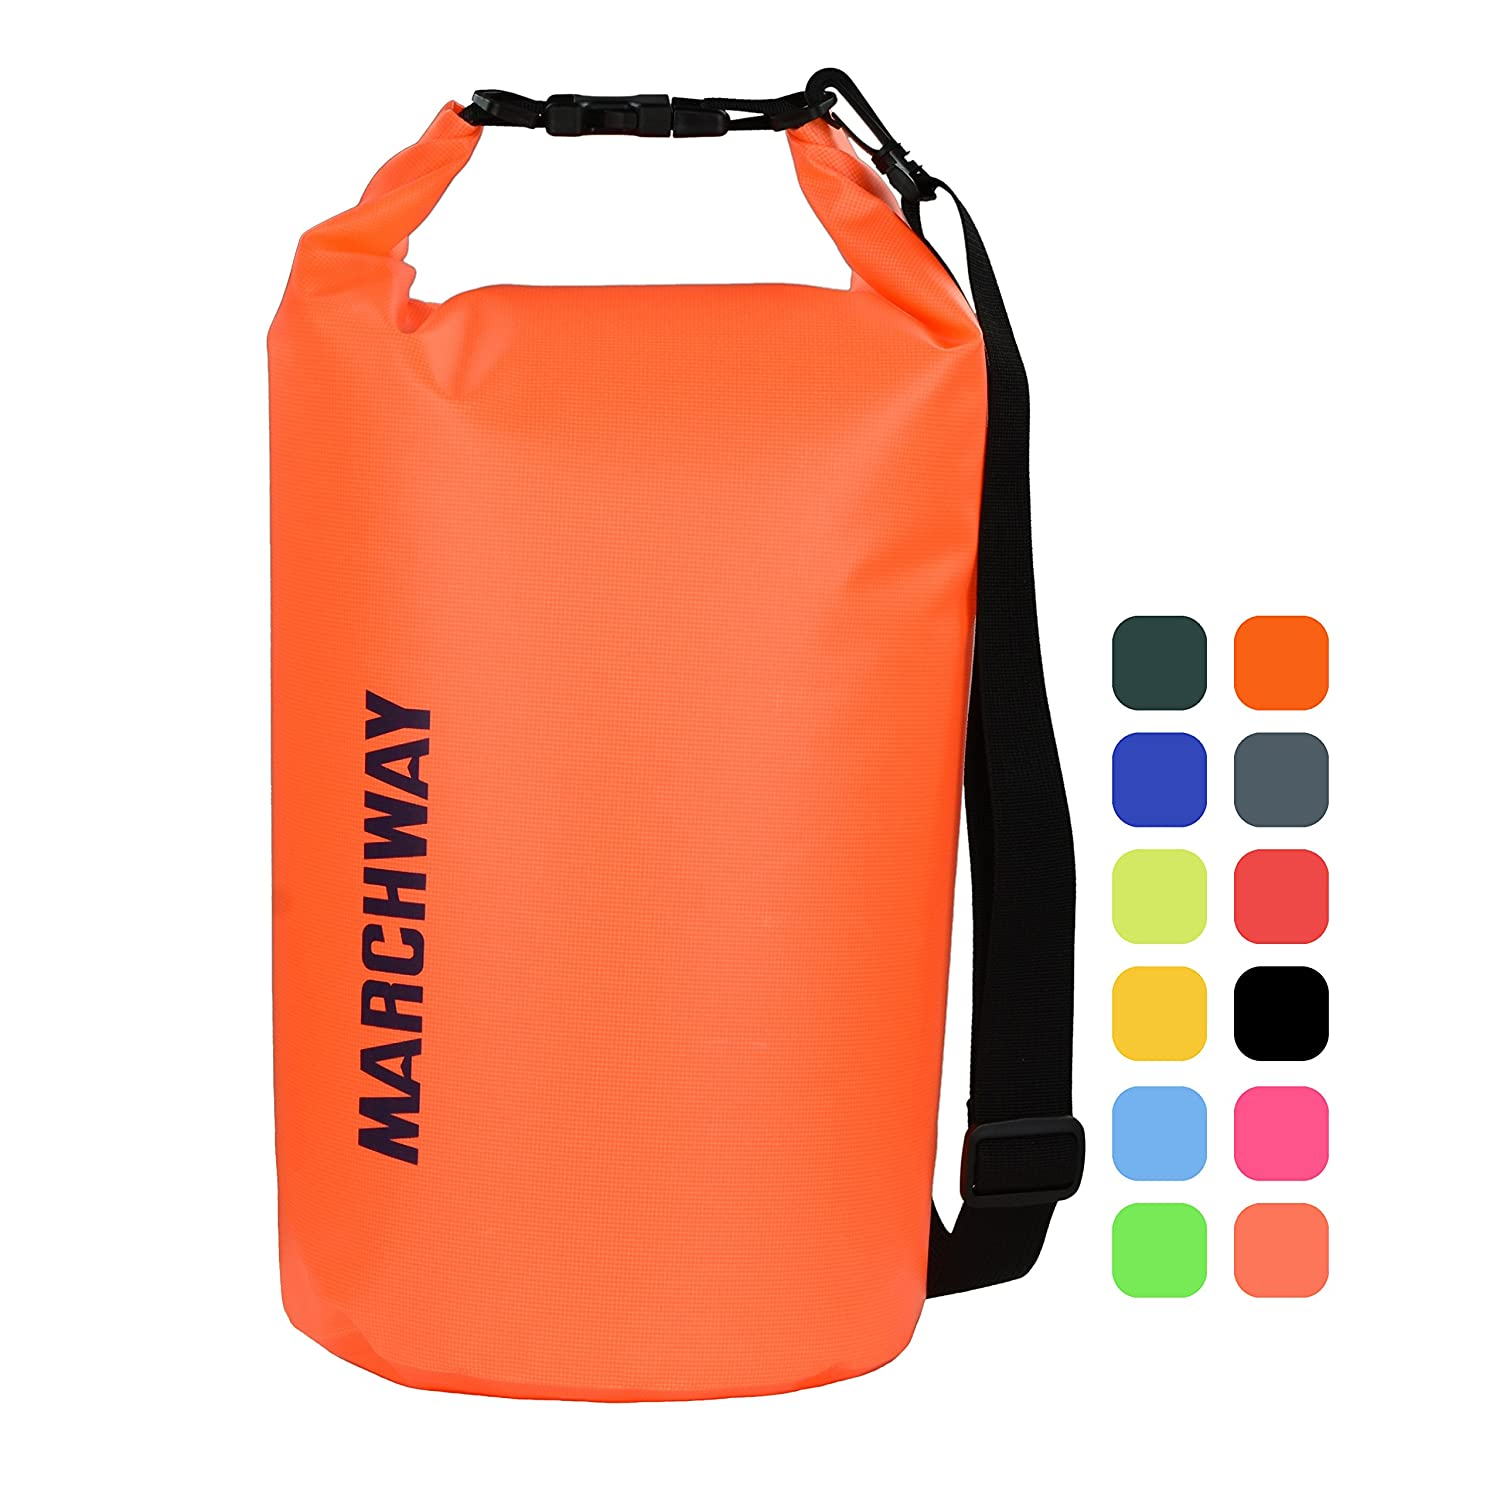 MARCHWAY Floating Waterproof Dry Bag 5L 10L 20L 30L 40L Roll Top Sack Keeps Gear Dry Kayaking Rafting Boating Swimming Camping Hiking Beach Fishing